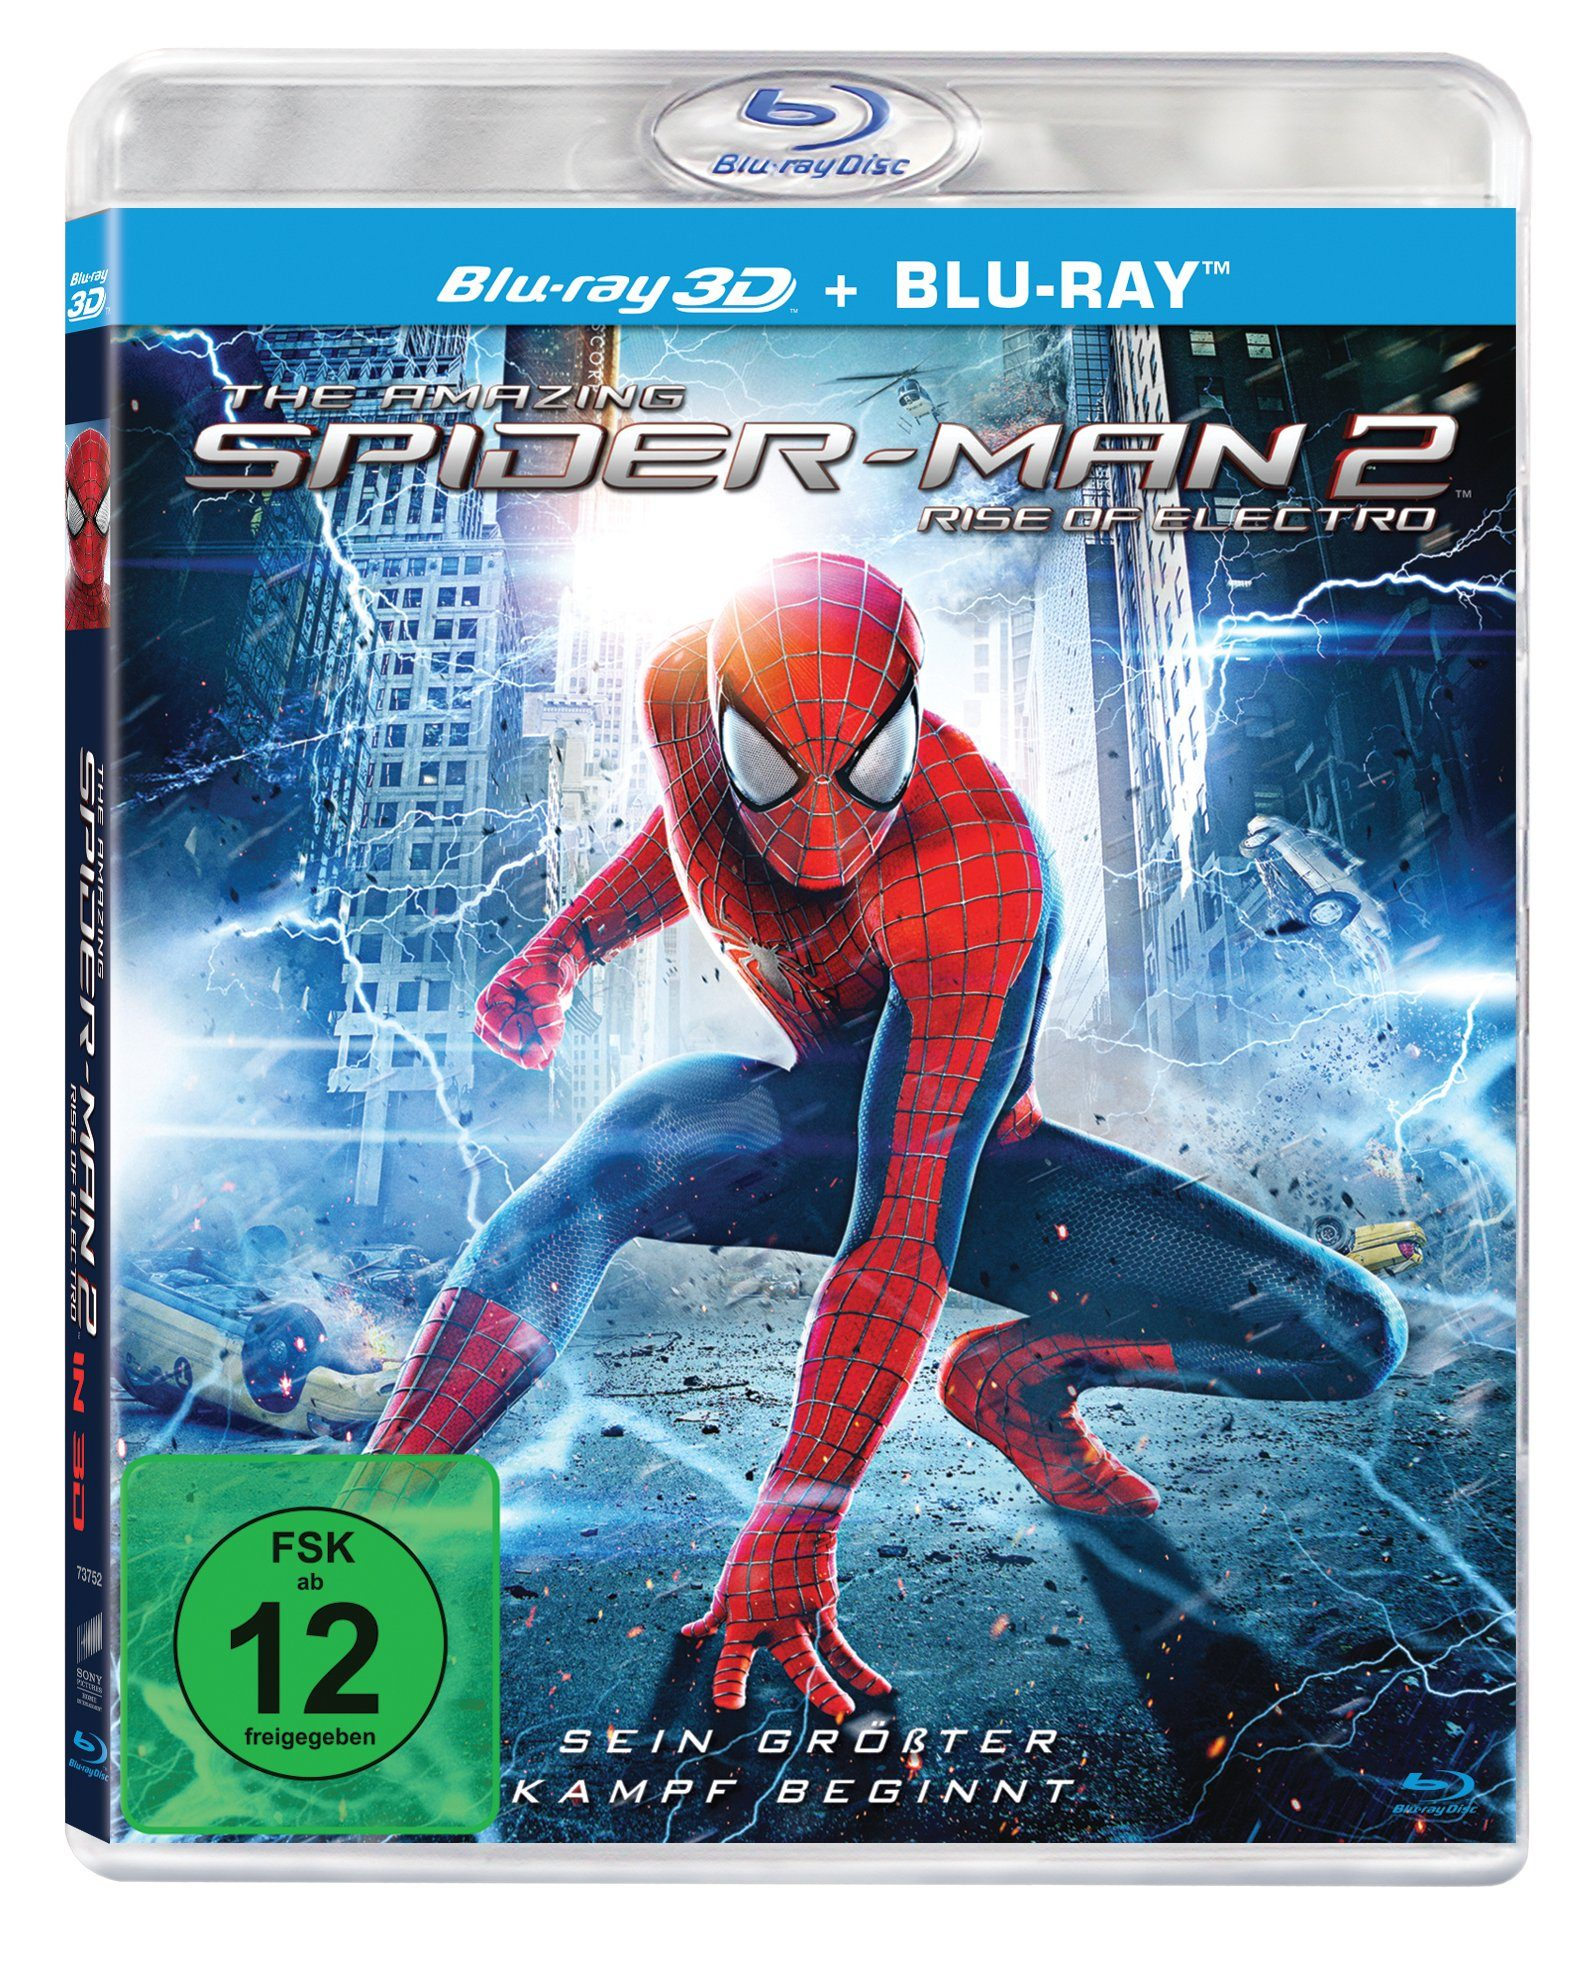 Sony Pictures Blu-ray (3D + 2D Version, 2 Discs) »The Amazing Spider-Man 2: Rise of Electro«